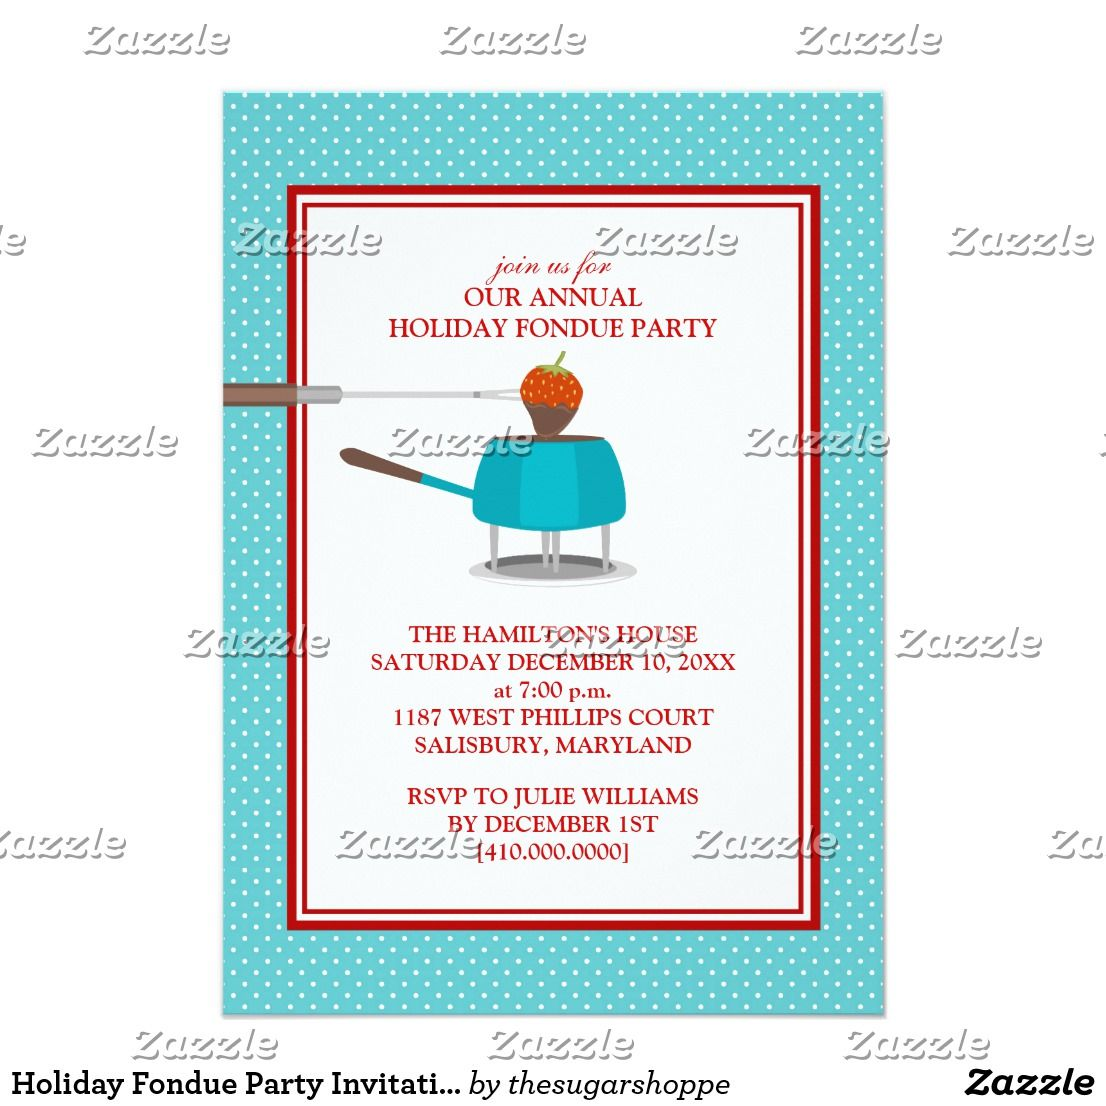 Holiday Fondue Party Invitations | Invitation cards | Pinterest ...